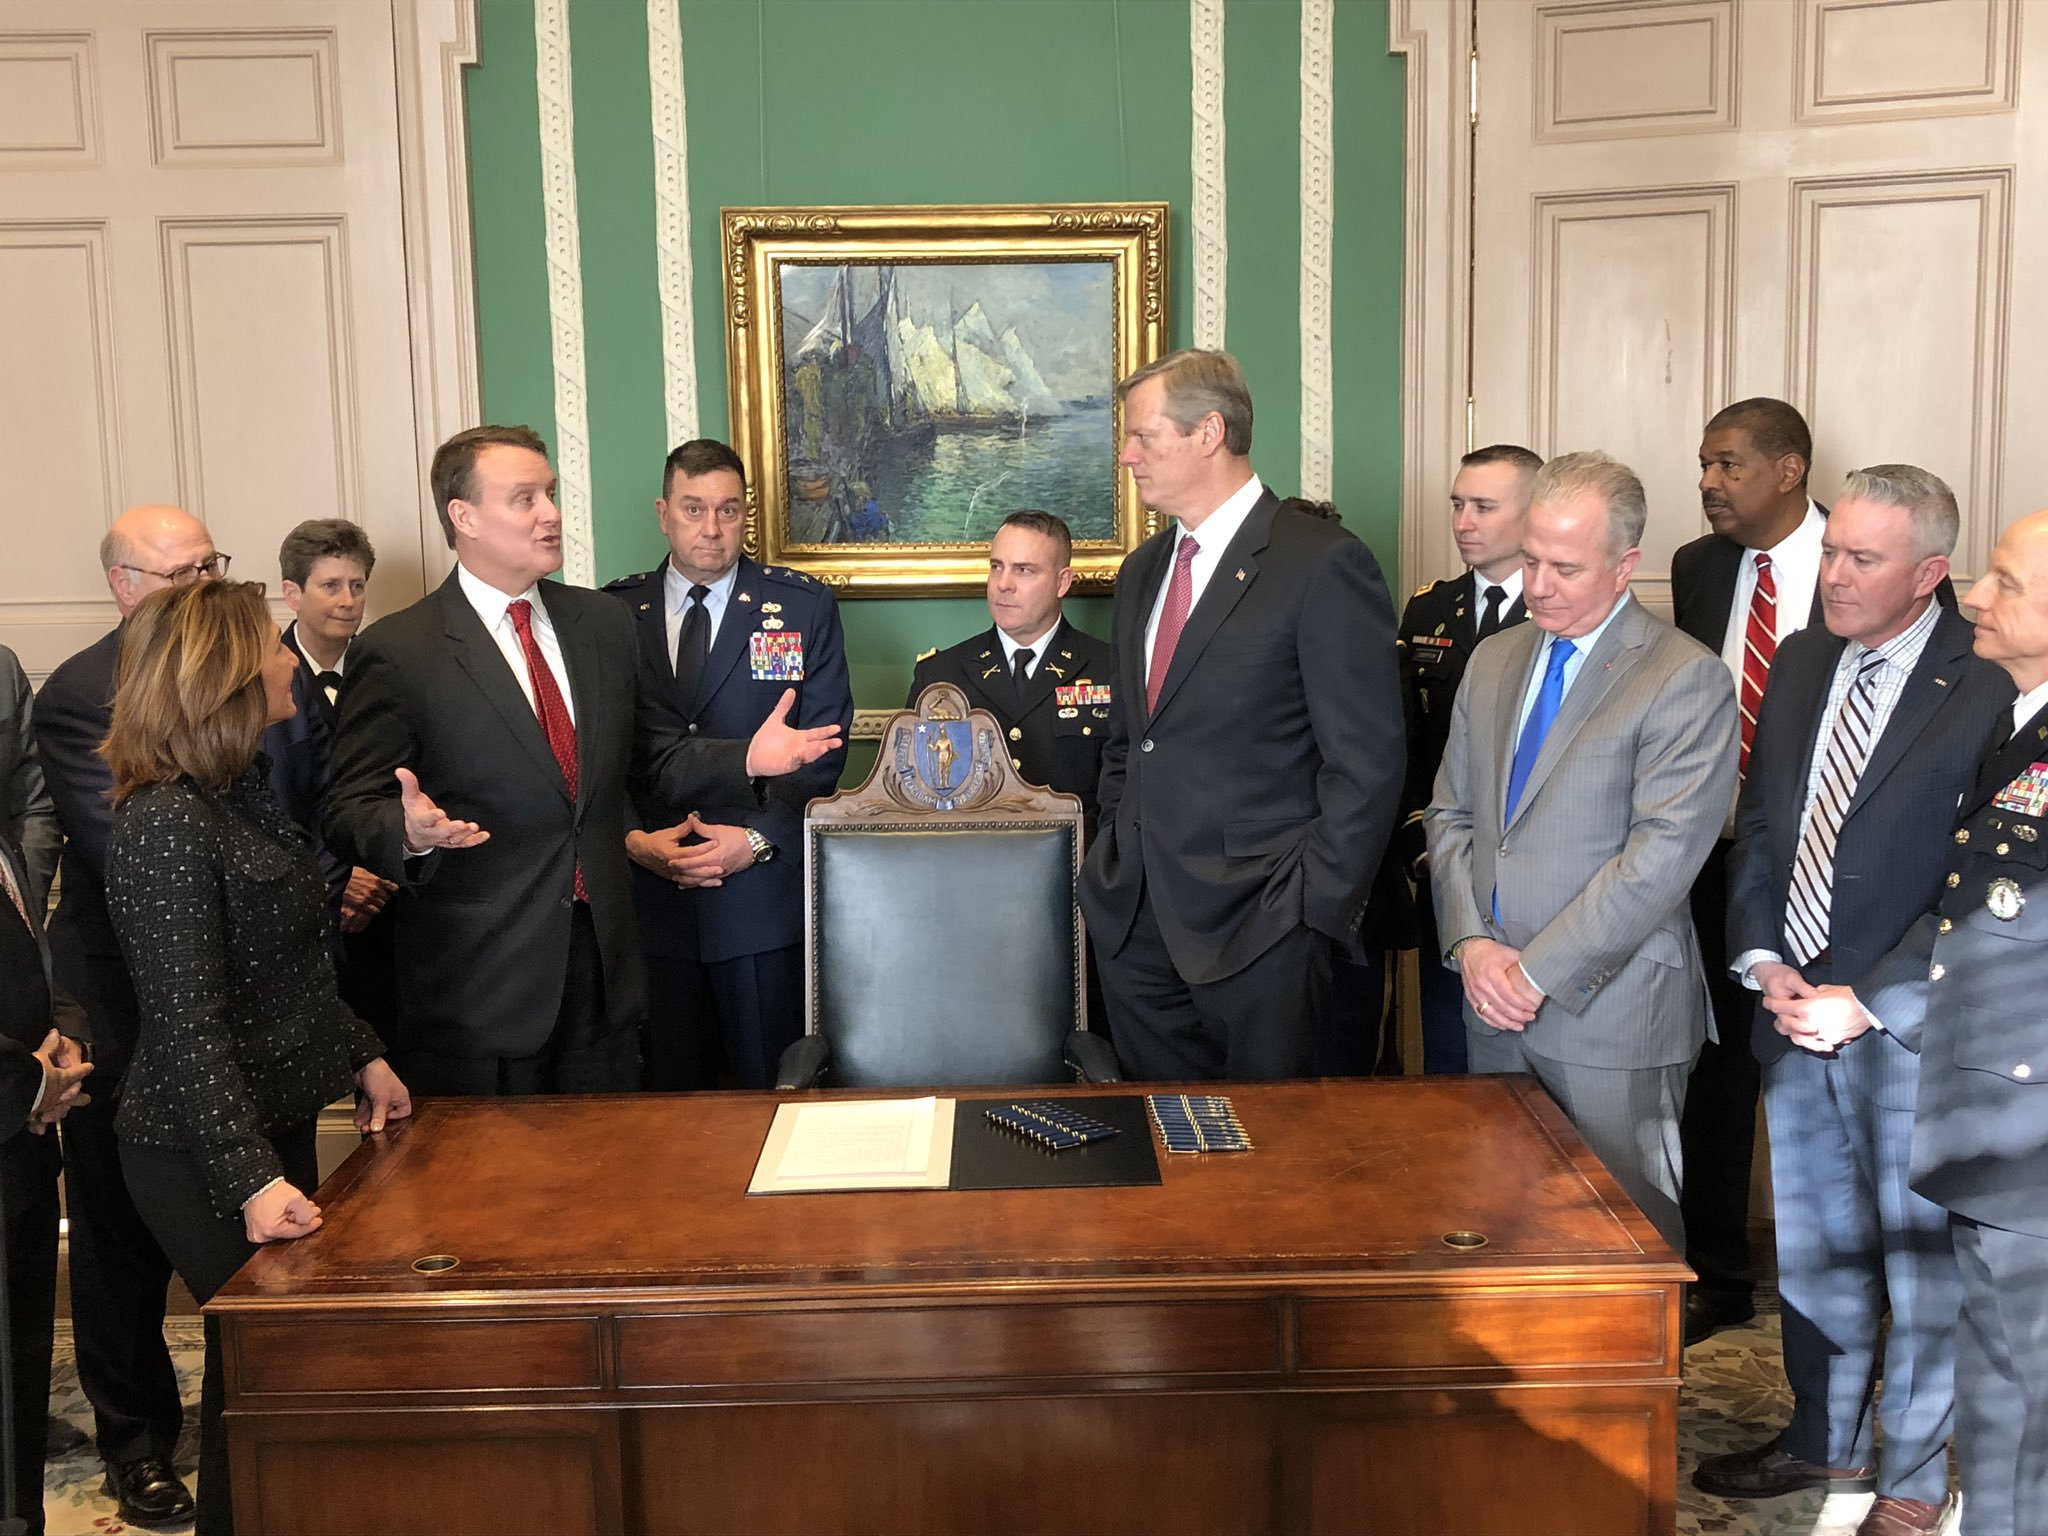 Pictured: Senator Michael Moore speaking with Governor Charlie Baker, Lt. Governor Karyn Polito, Major General Gary Keefe and legislative colleagues in the Governor's Office at the State House in Boston.